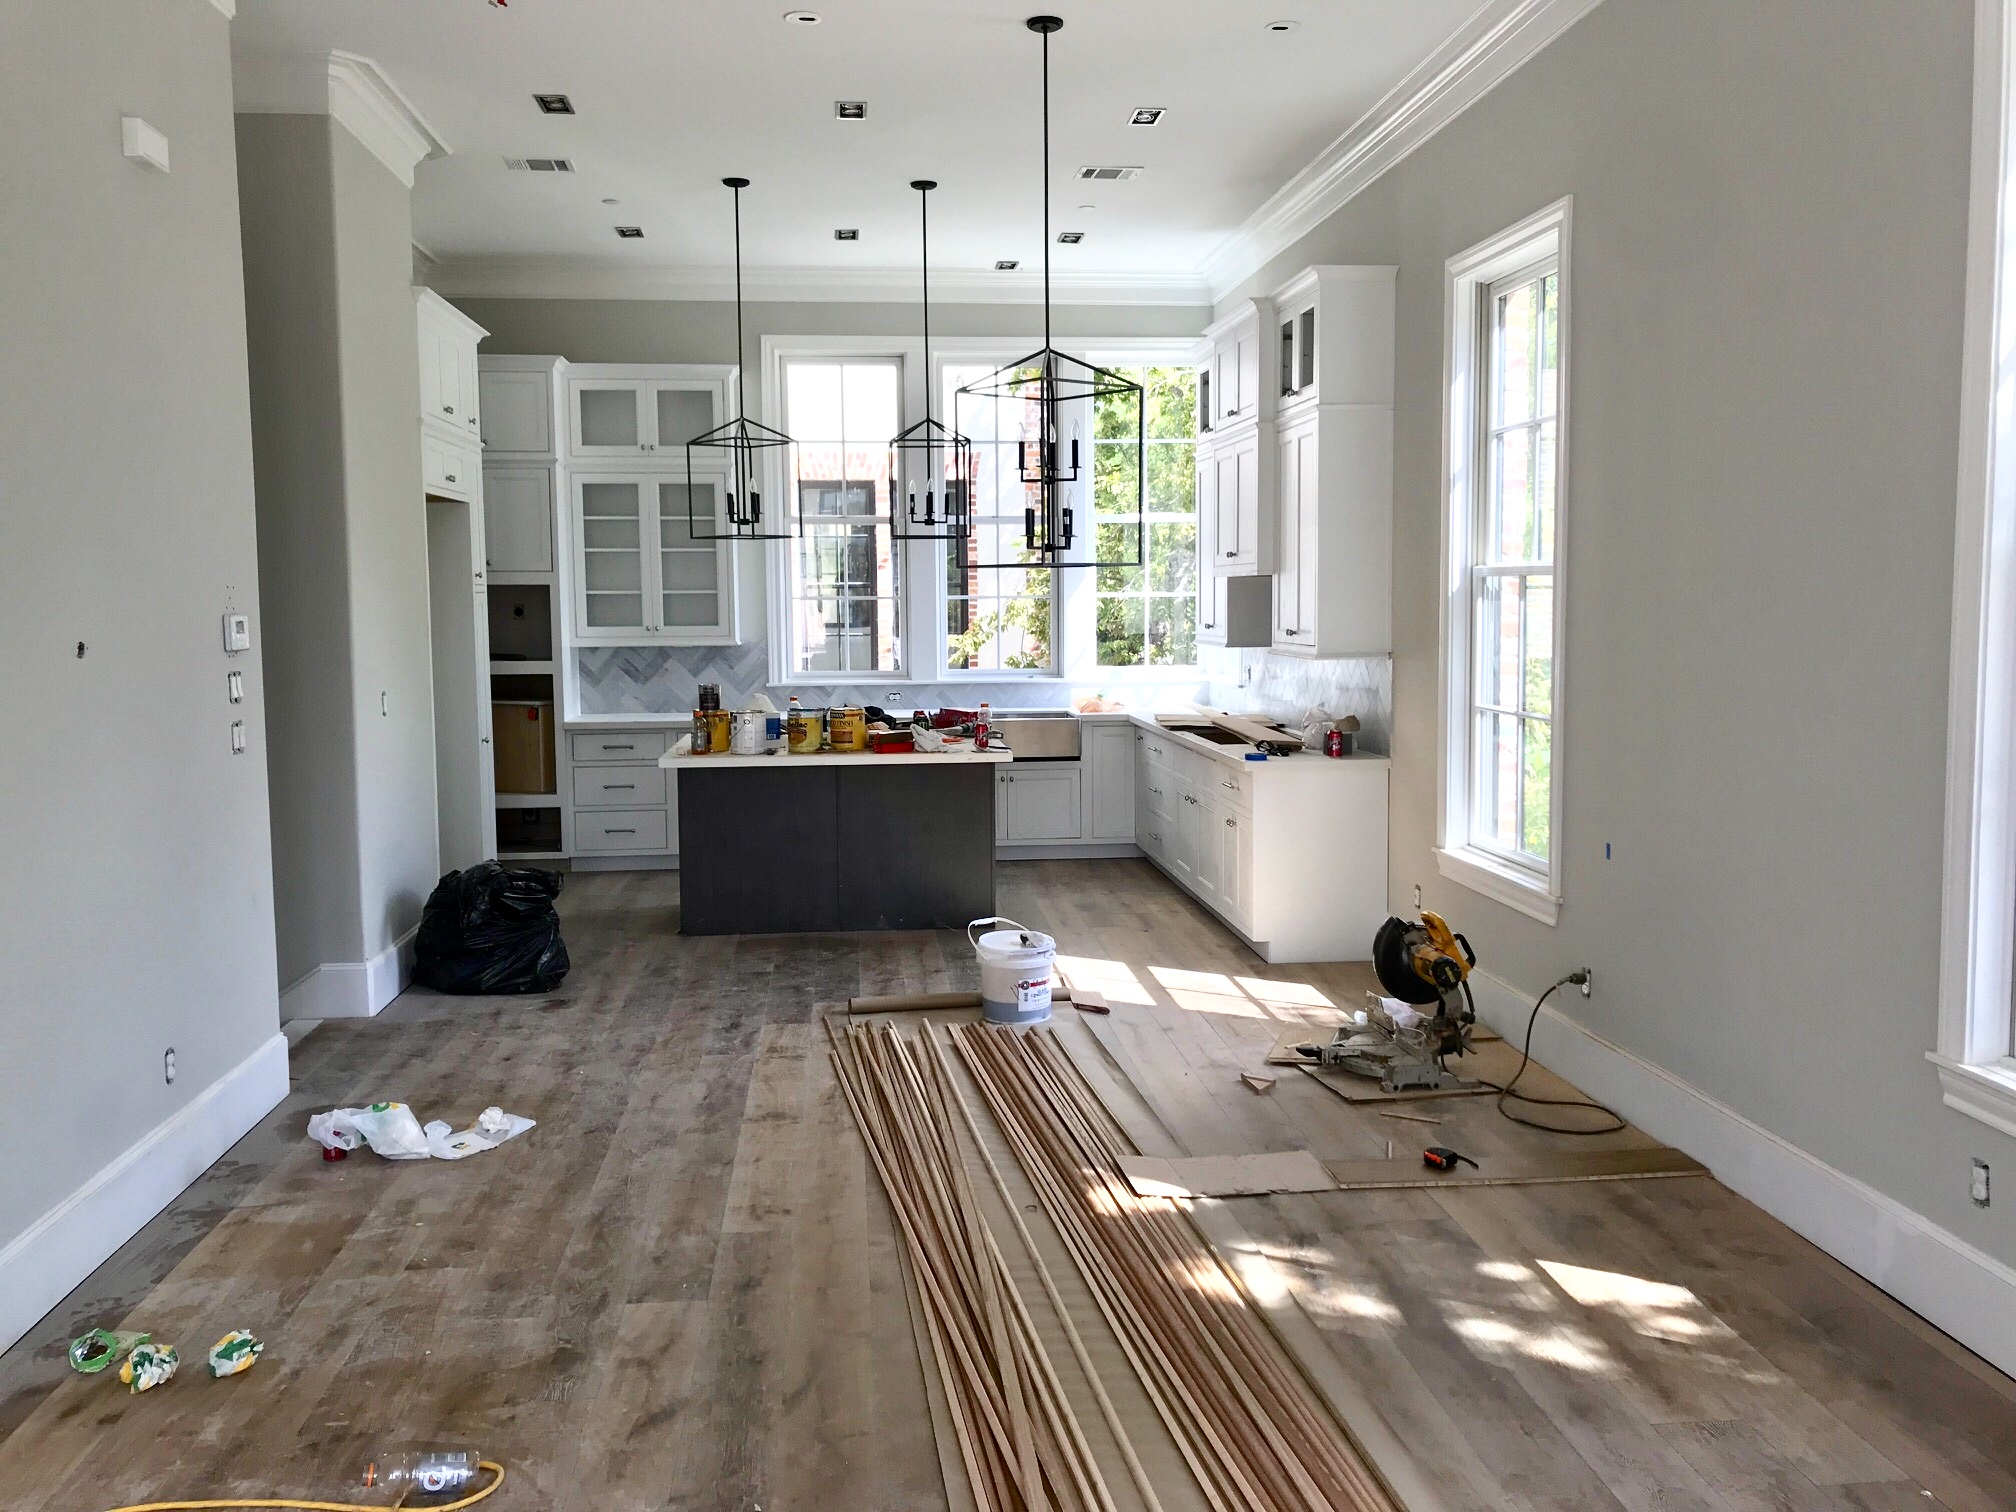 Edith Barrera Interiors Before Pic Of White Kitchen That Gets A Warm Pop Of Color Design By Edith Barrera Interiors Llc